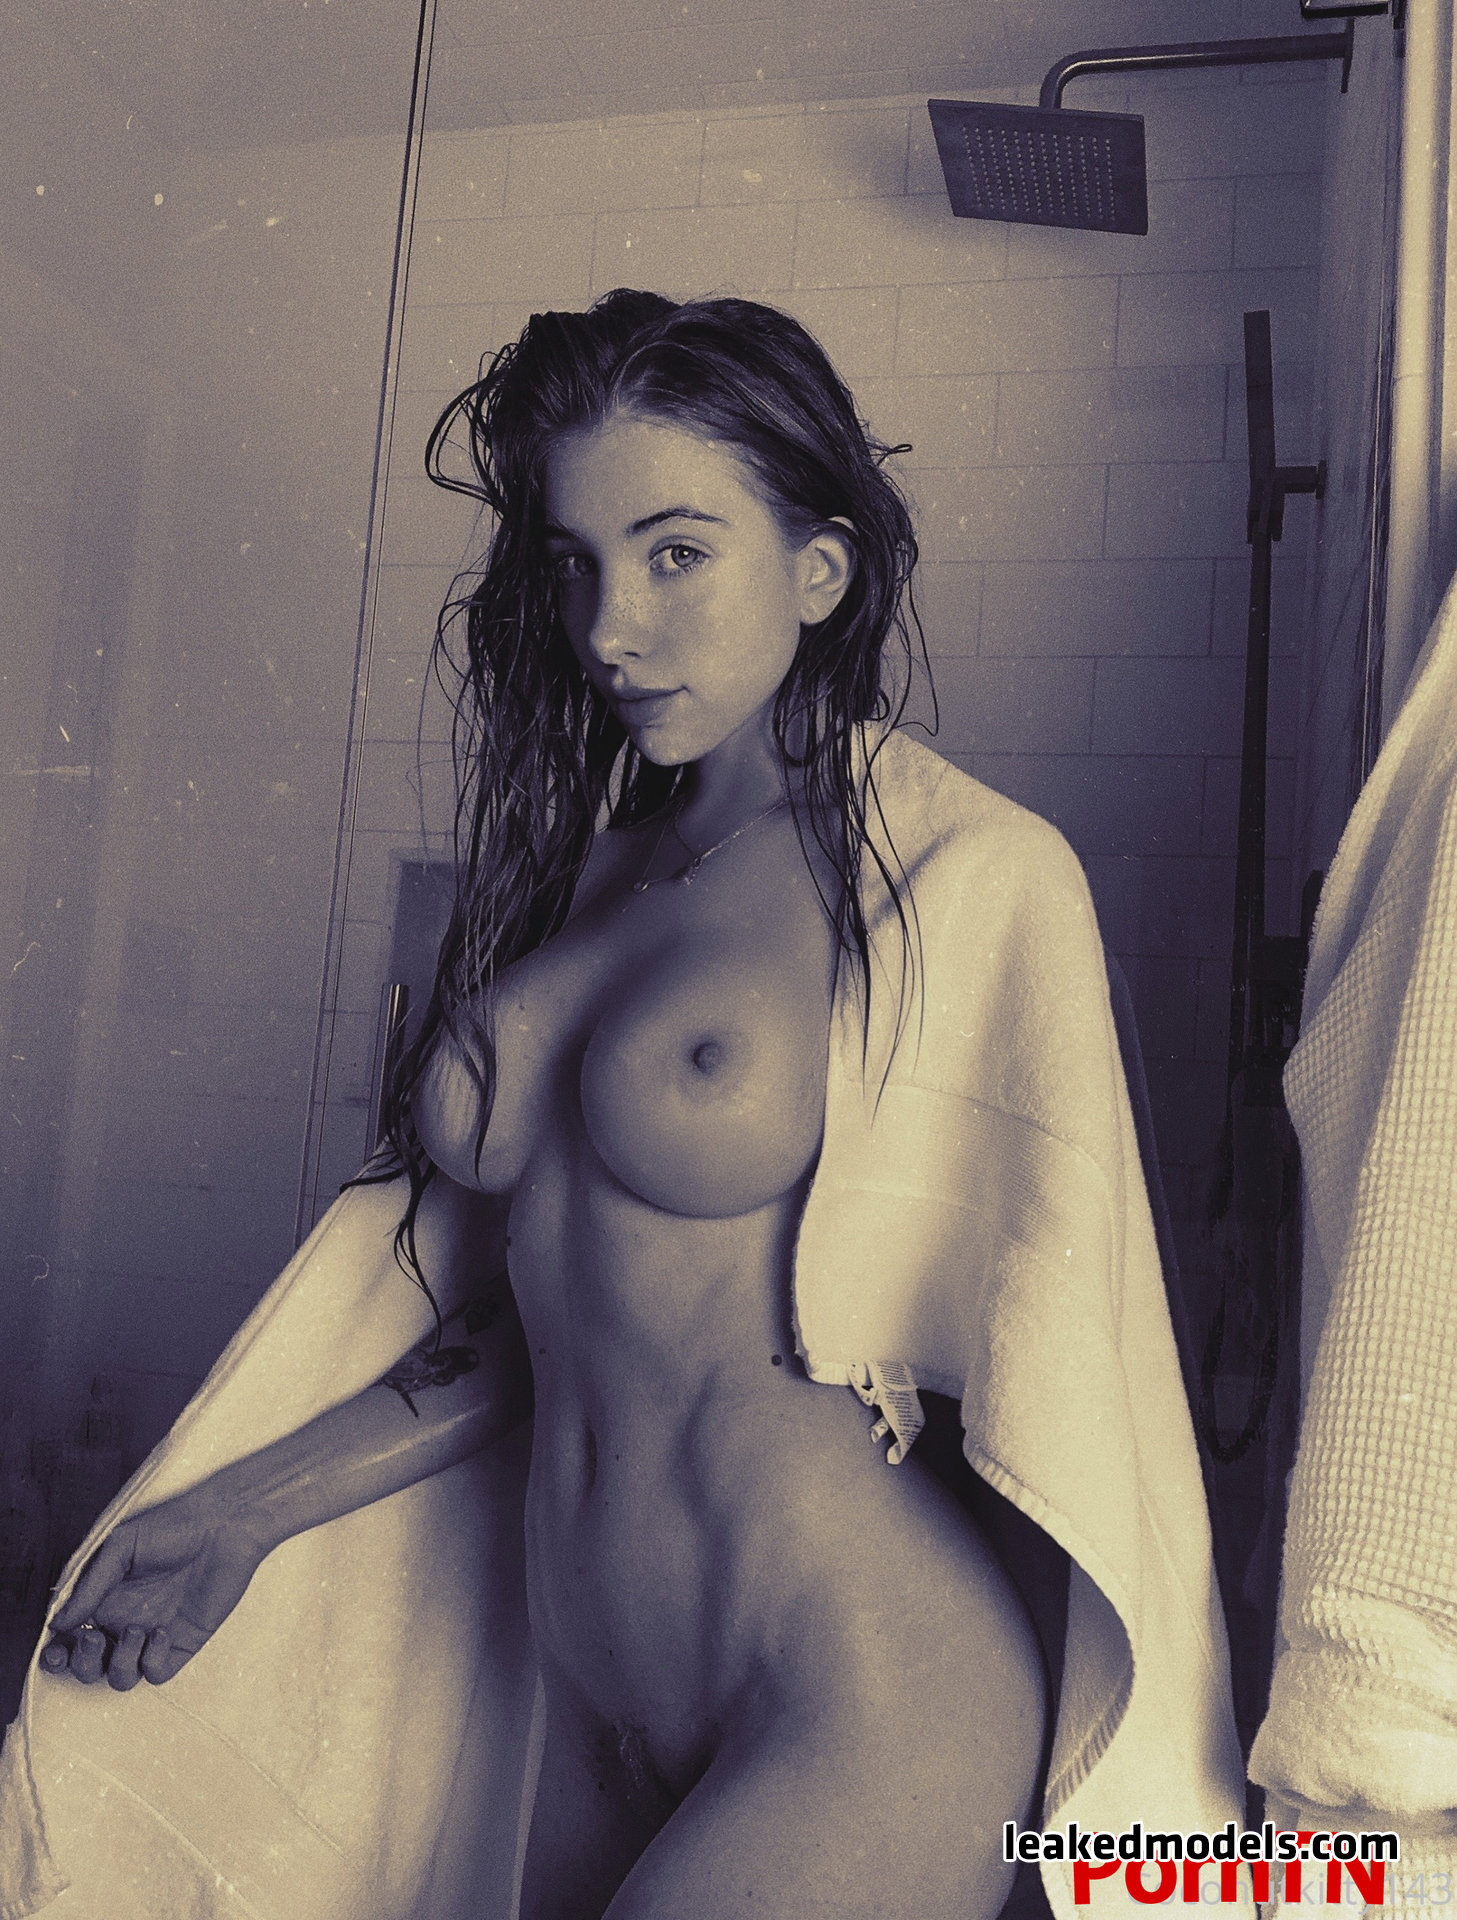 Coconut Kitty – coconutkitty OnlyFans Nude Leaks (33 Photos)